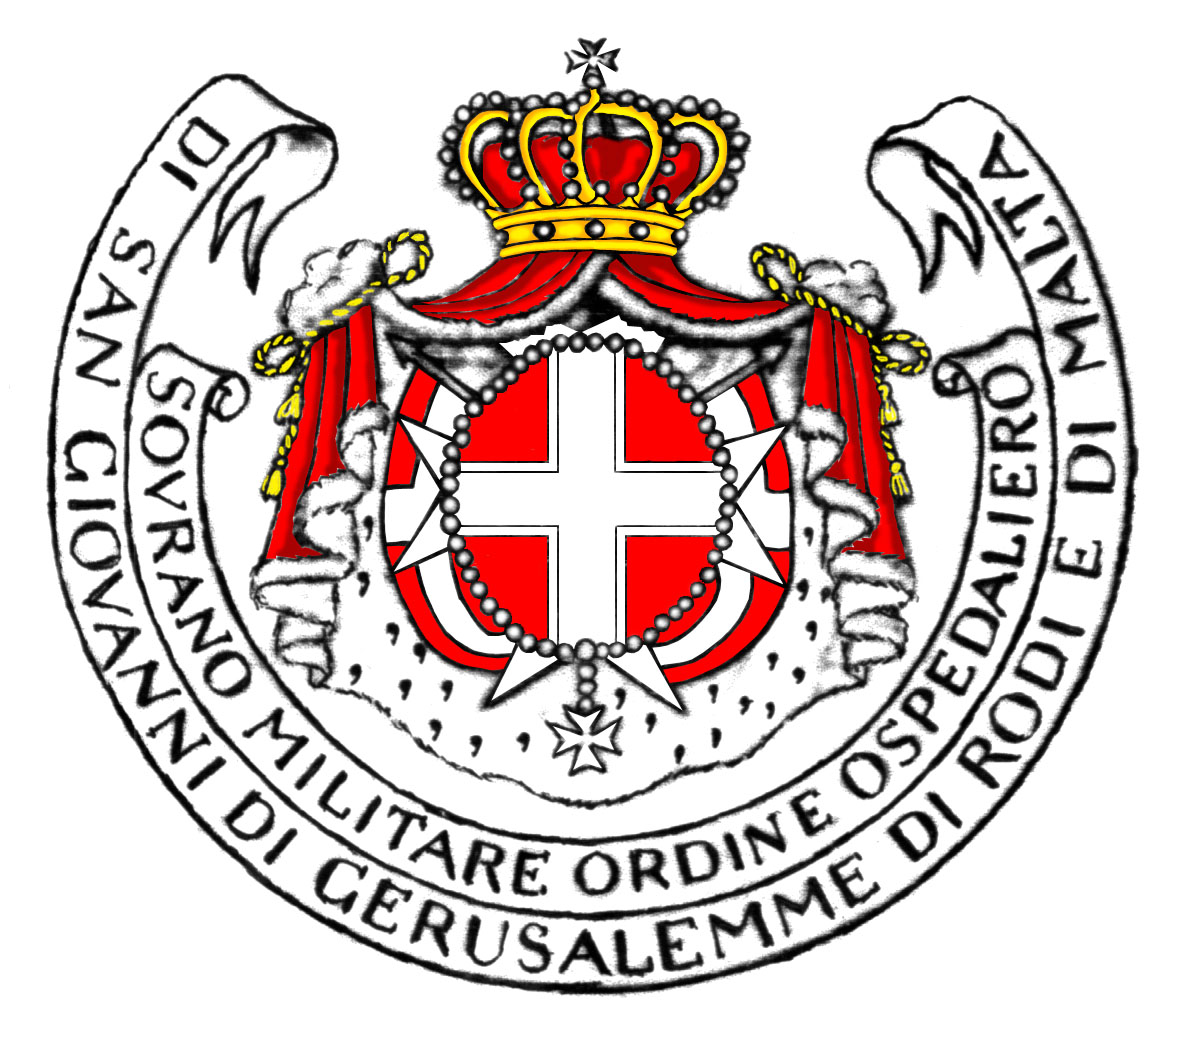 PerLaMare The Order of St. John of Jerusalem